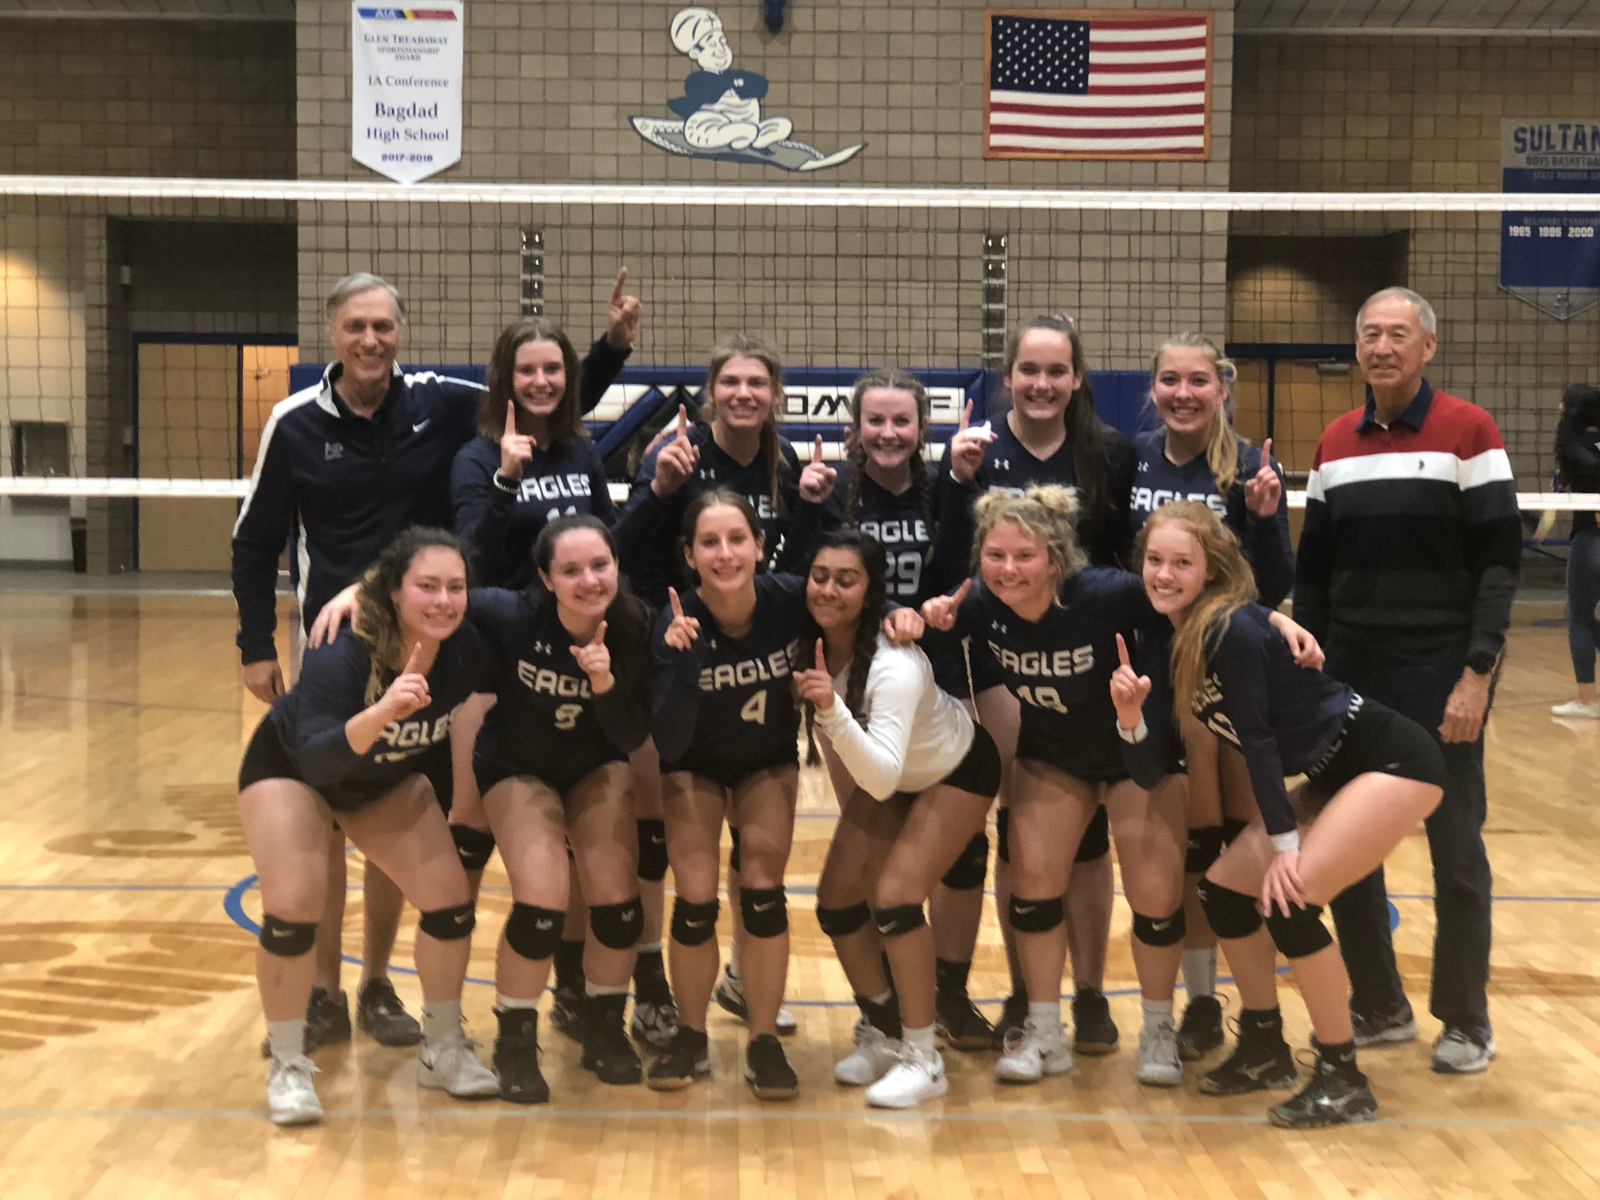 HS Volleyball Wins 1A West Regional Tourney Beating Salome and North Valley Christian